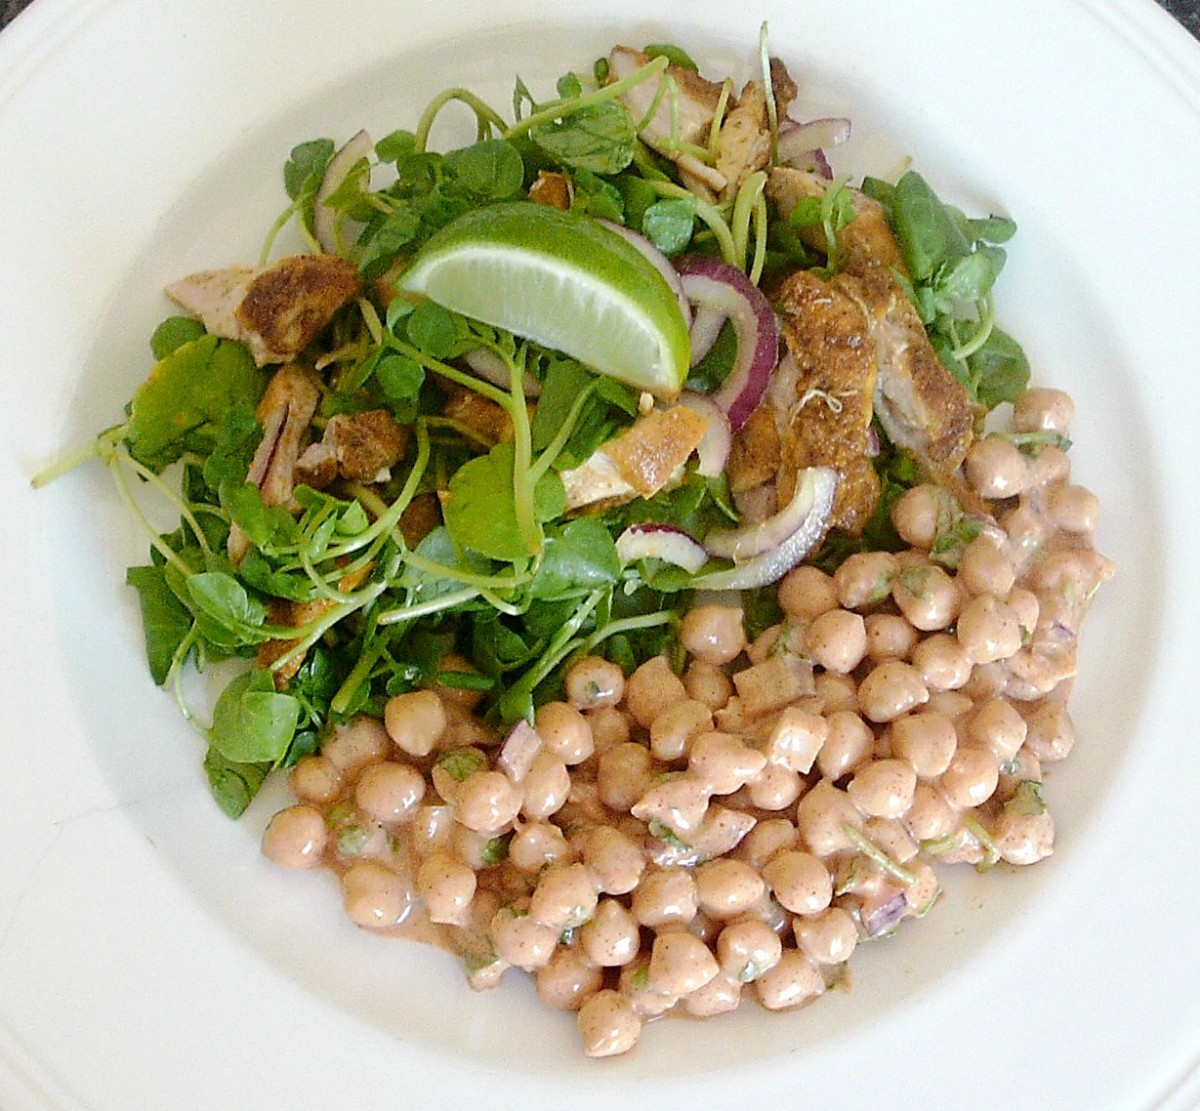 10 Different Chickpea Recipes and Serving Suggestions